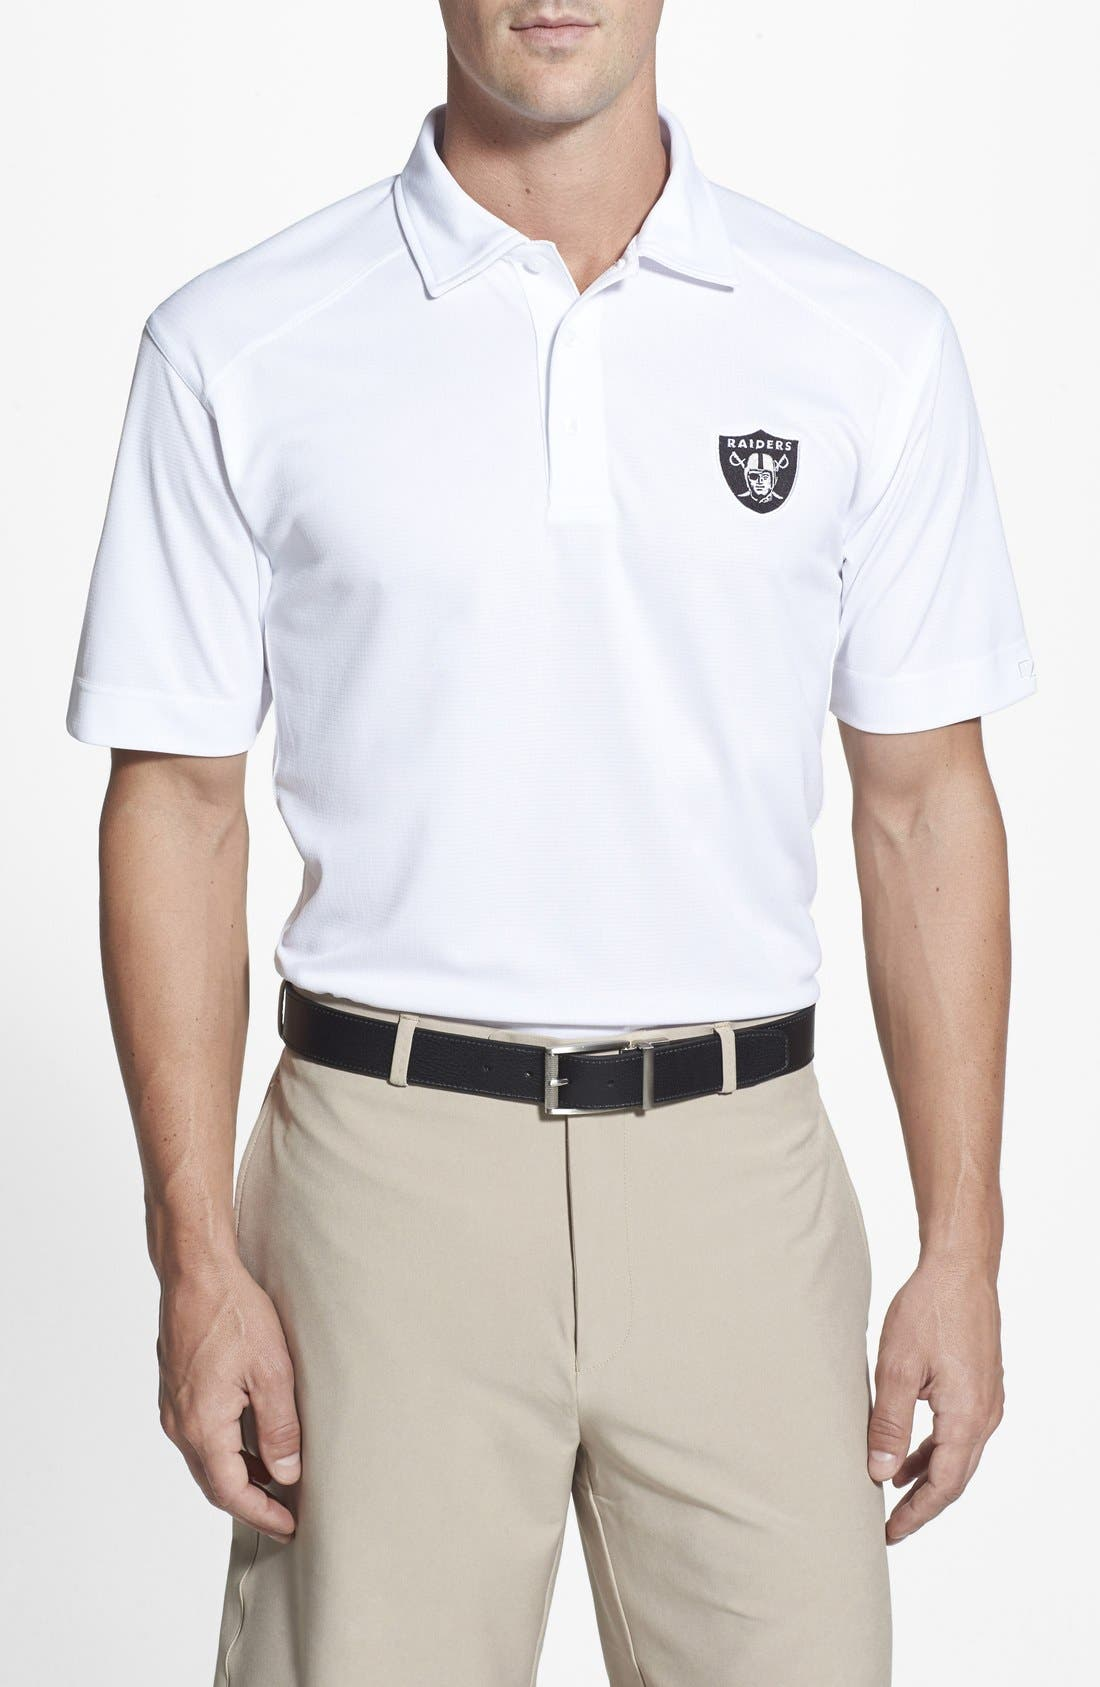 Oakland Raiders - Genre DryTec Moisture Wicking Polo,                         Main,                         color, White